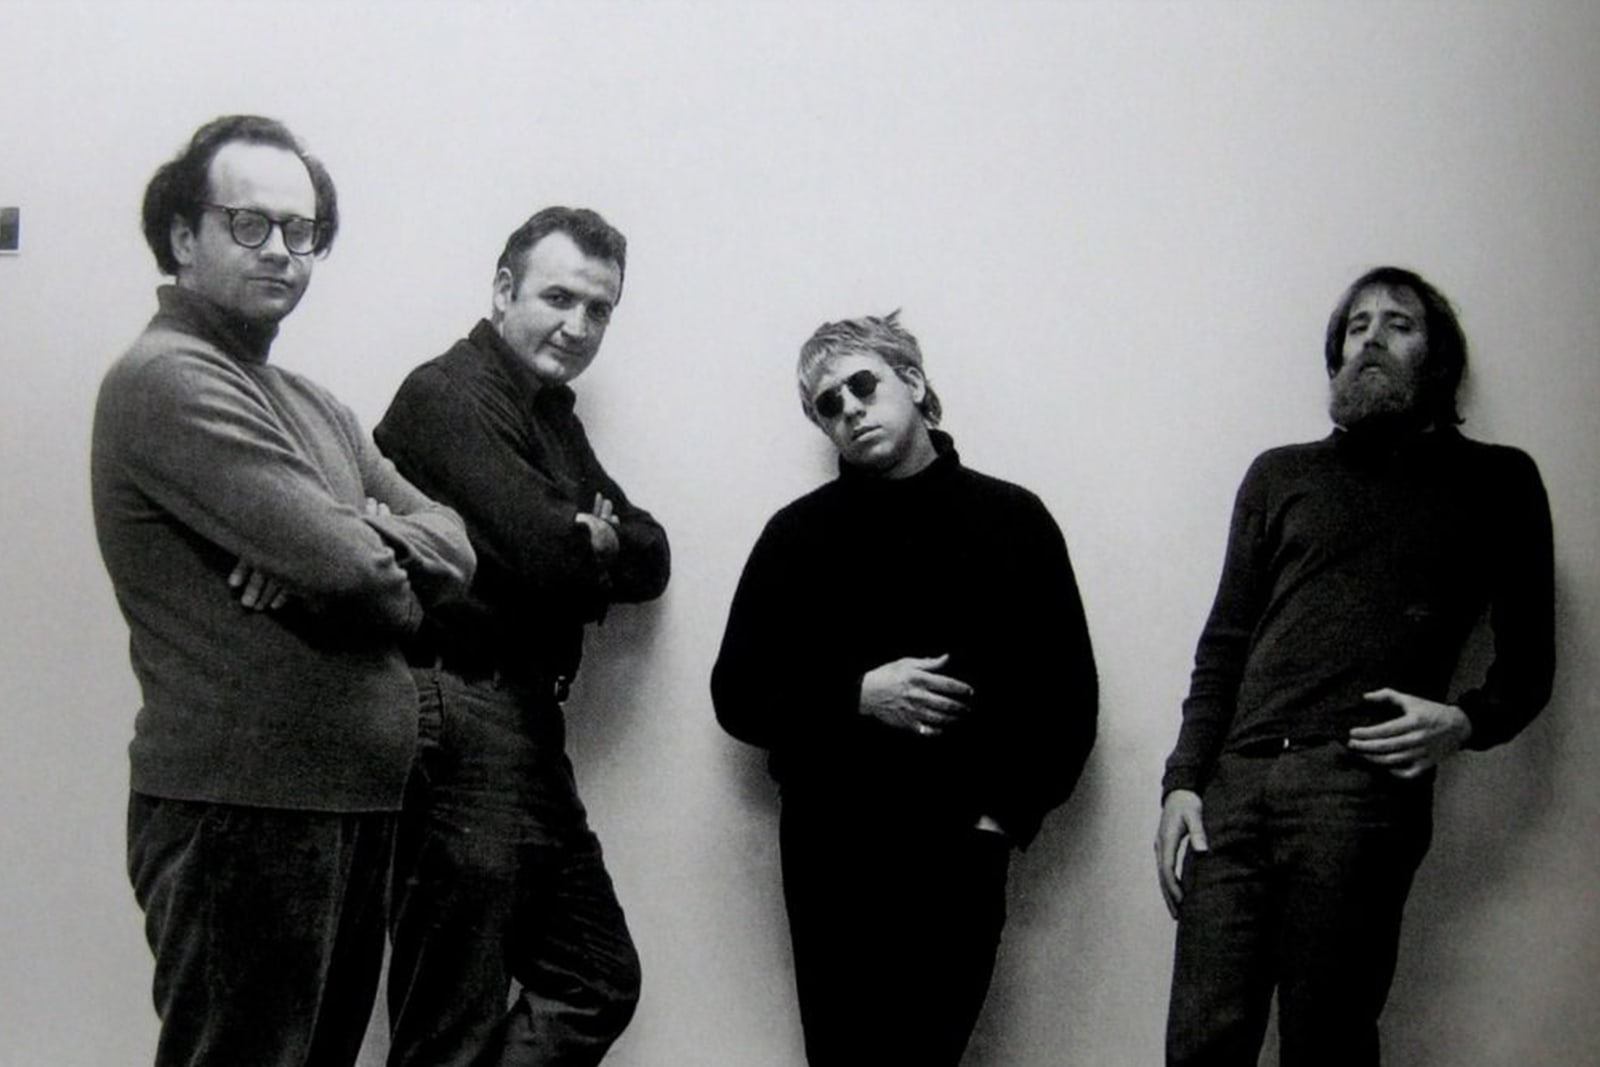 Ugly kids? From left to right: Robert Barry, Douglas Hueber, Joseph Kosuth, Lawrence Wiener